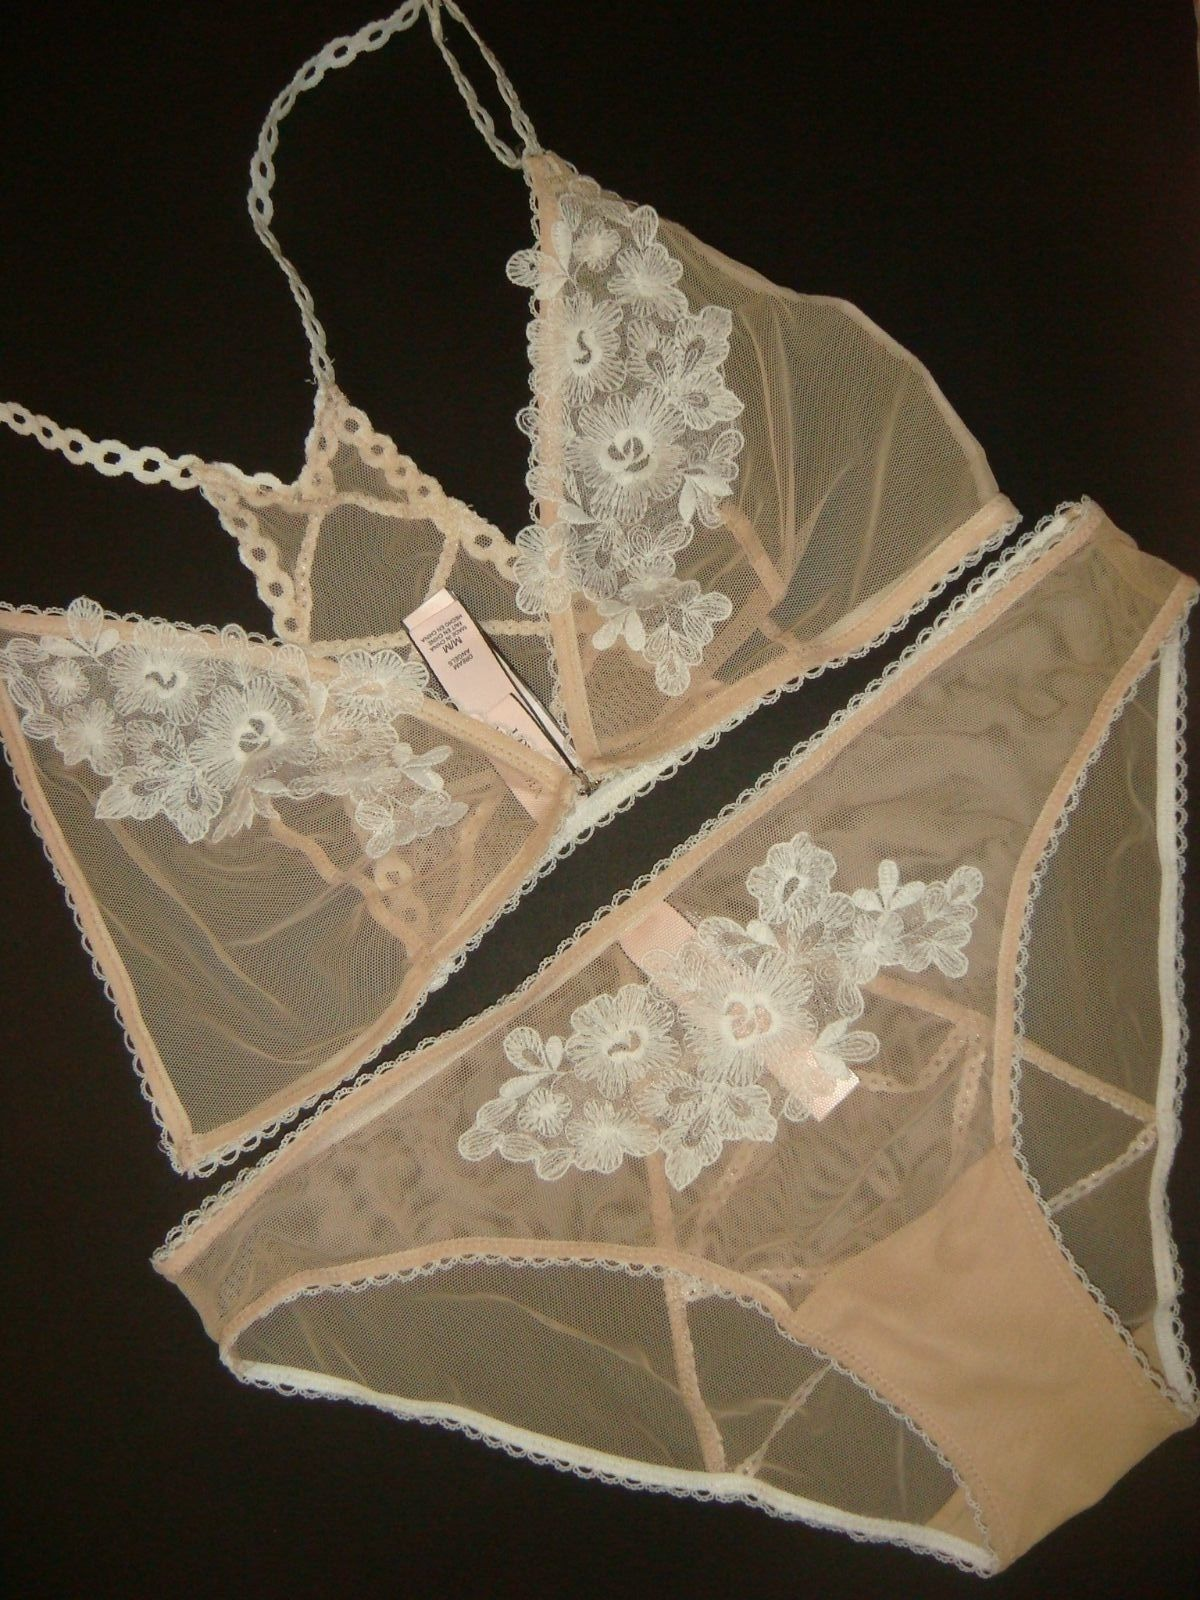 39d42a6f7a7 S l1600. S l1600. Previous. Victoria s Secret L BRA SET BRALETTE BEIGE  white floral embroidered lace  60+. Victoria s ...